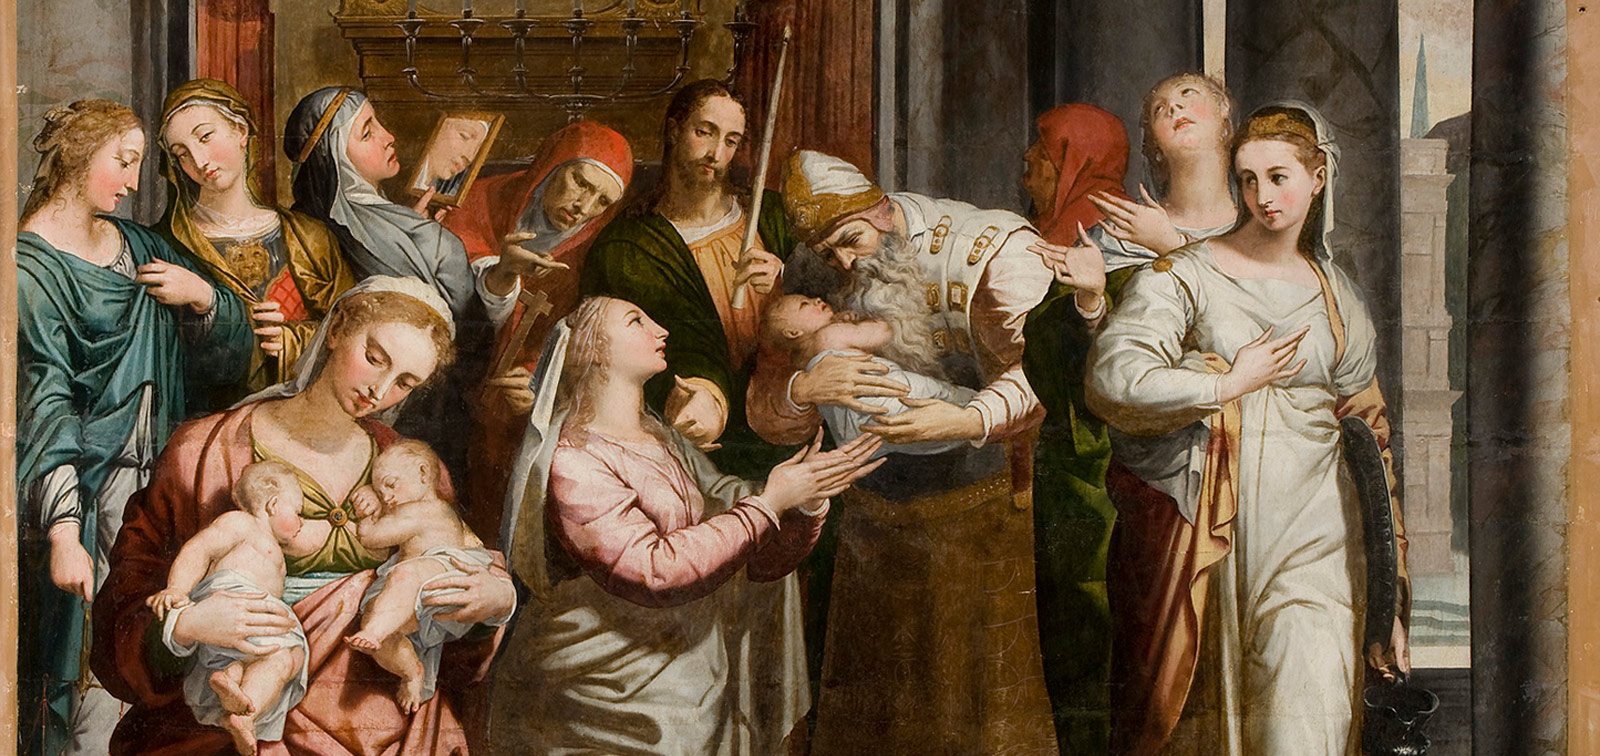 The Purification of the Virgin in the Temple by Pedro de Campaña